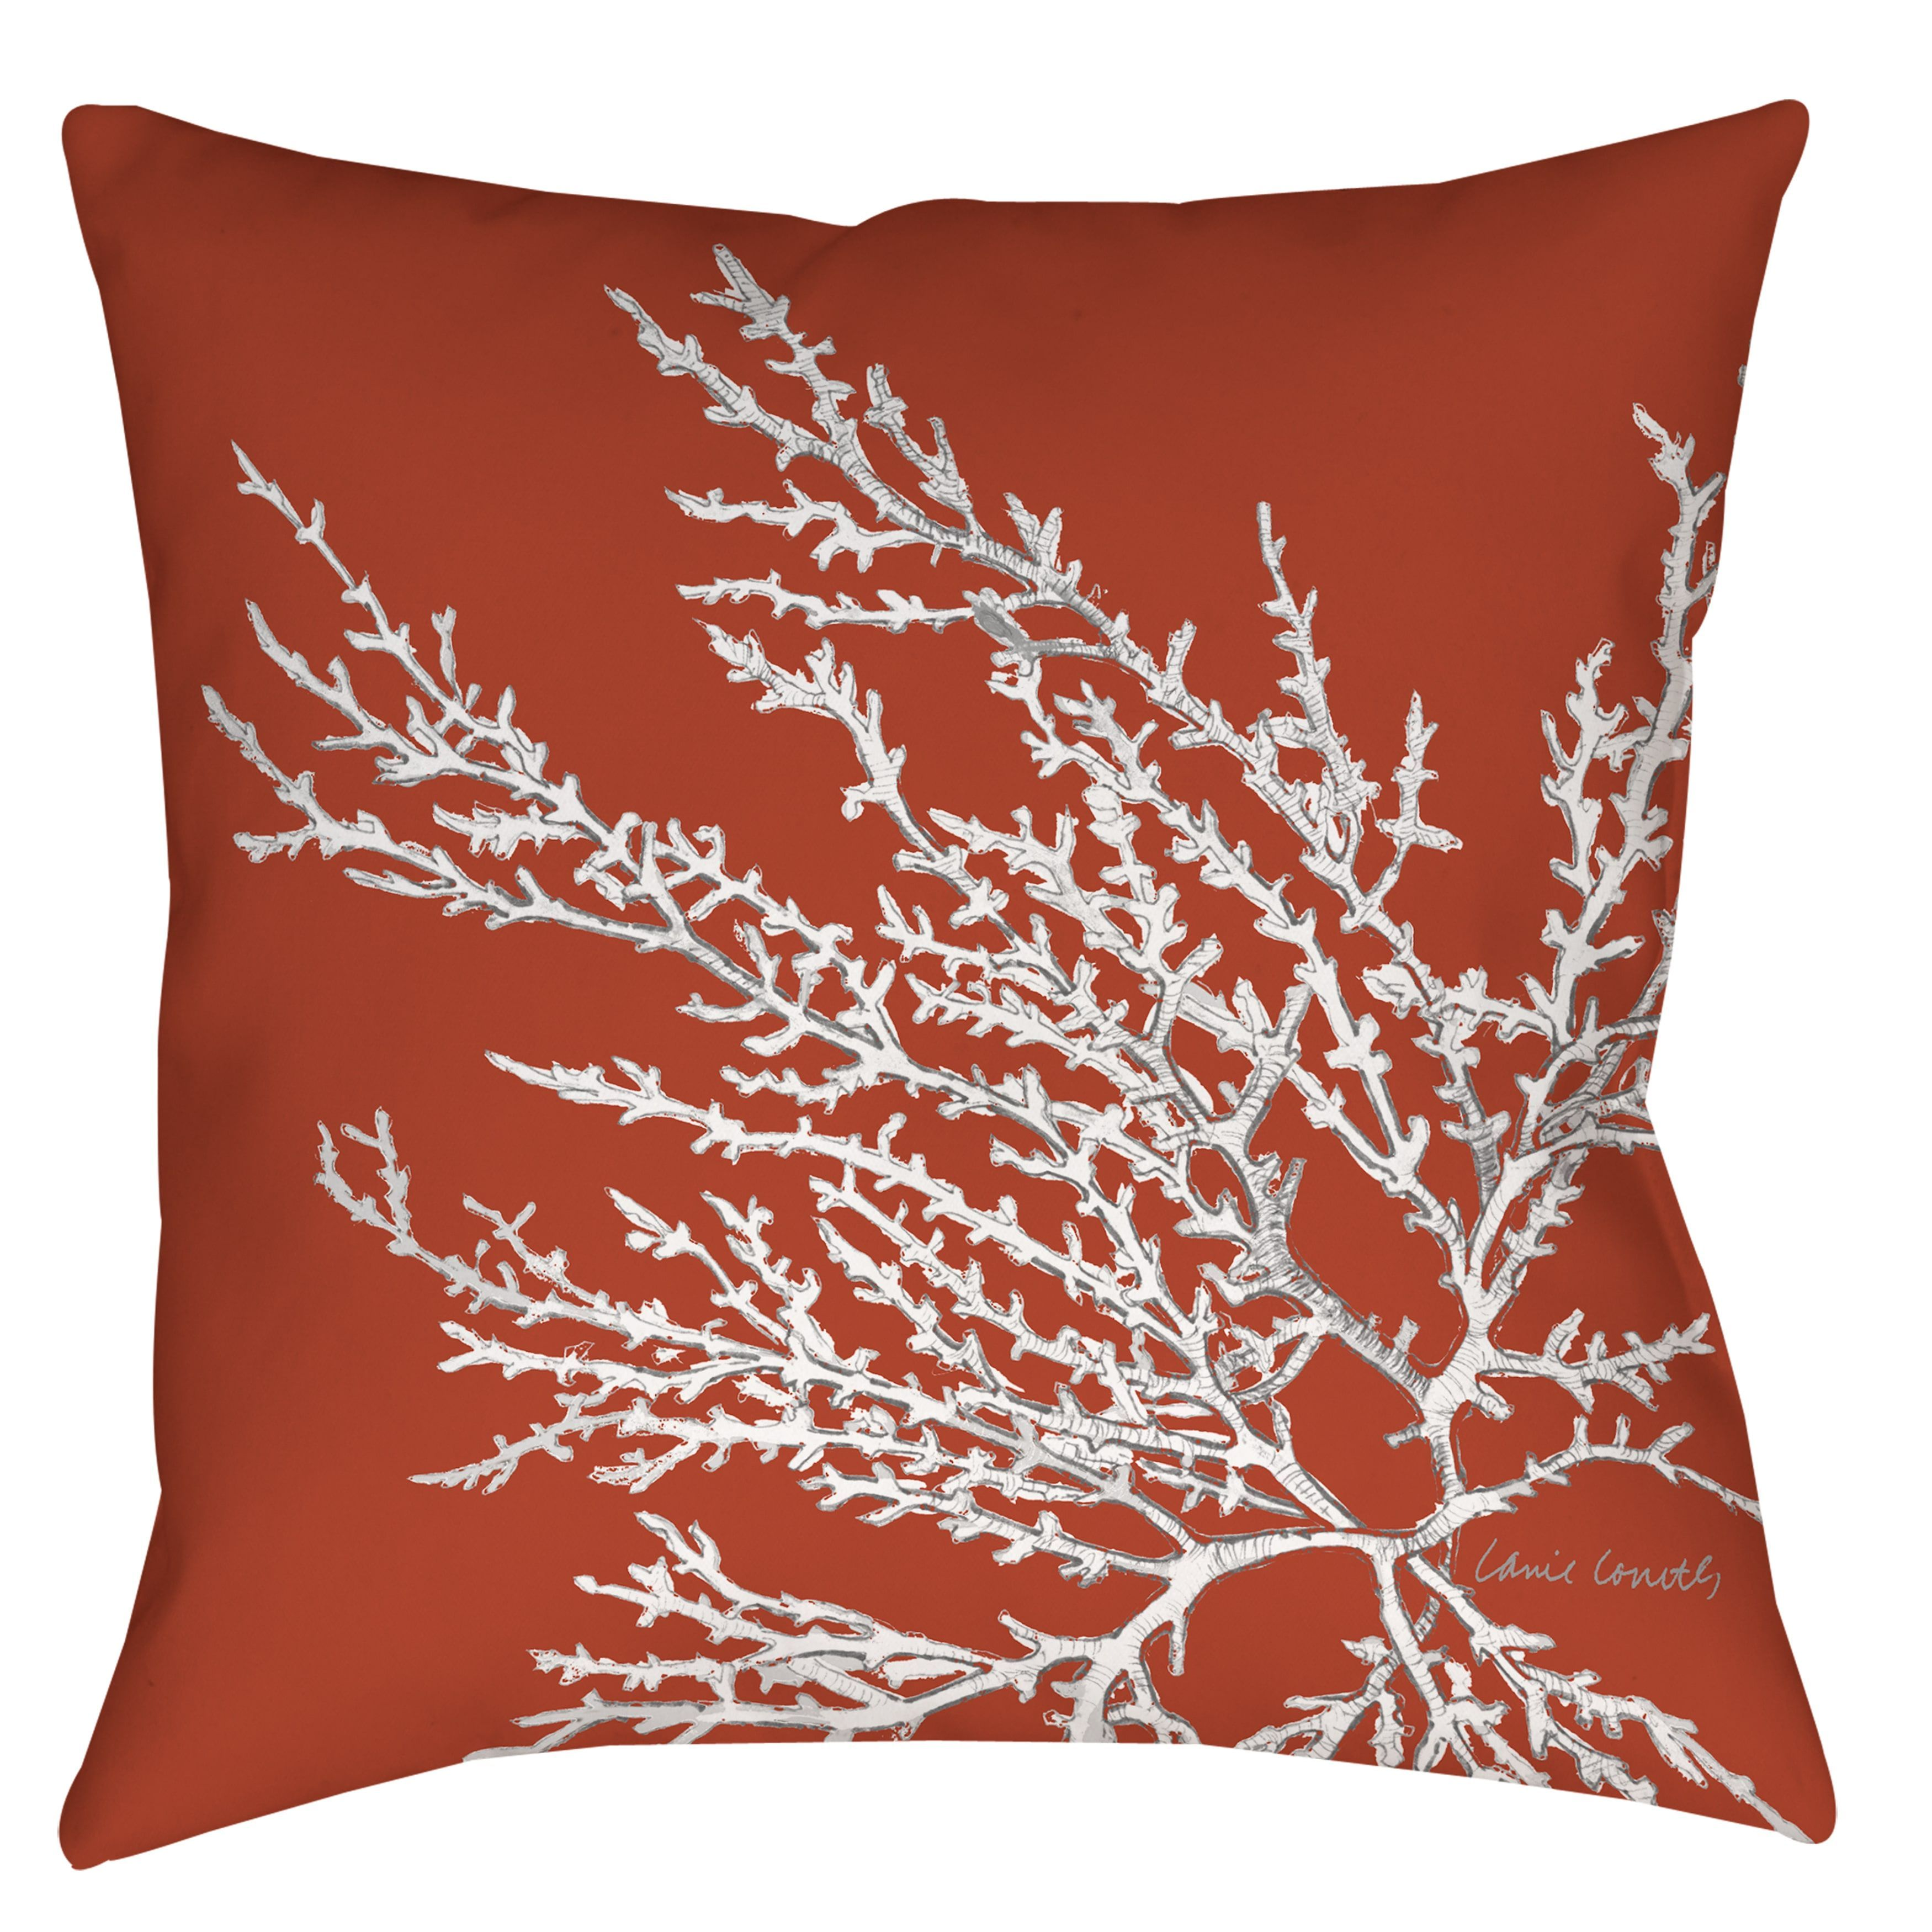 pillows and outlet coastal pin cushions motzdesigns outlets outdoor cushion cover pillow regatta